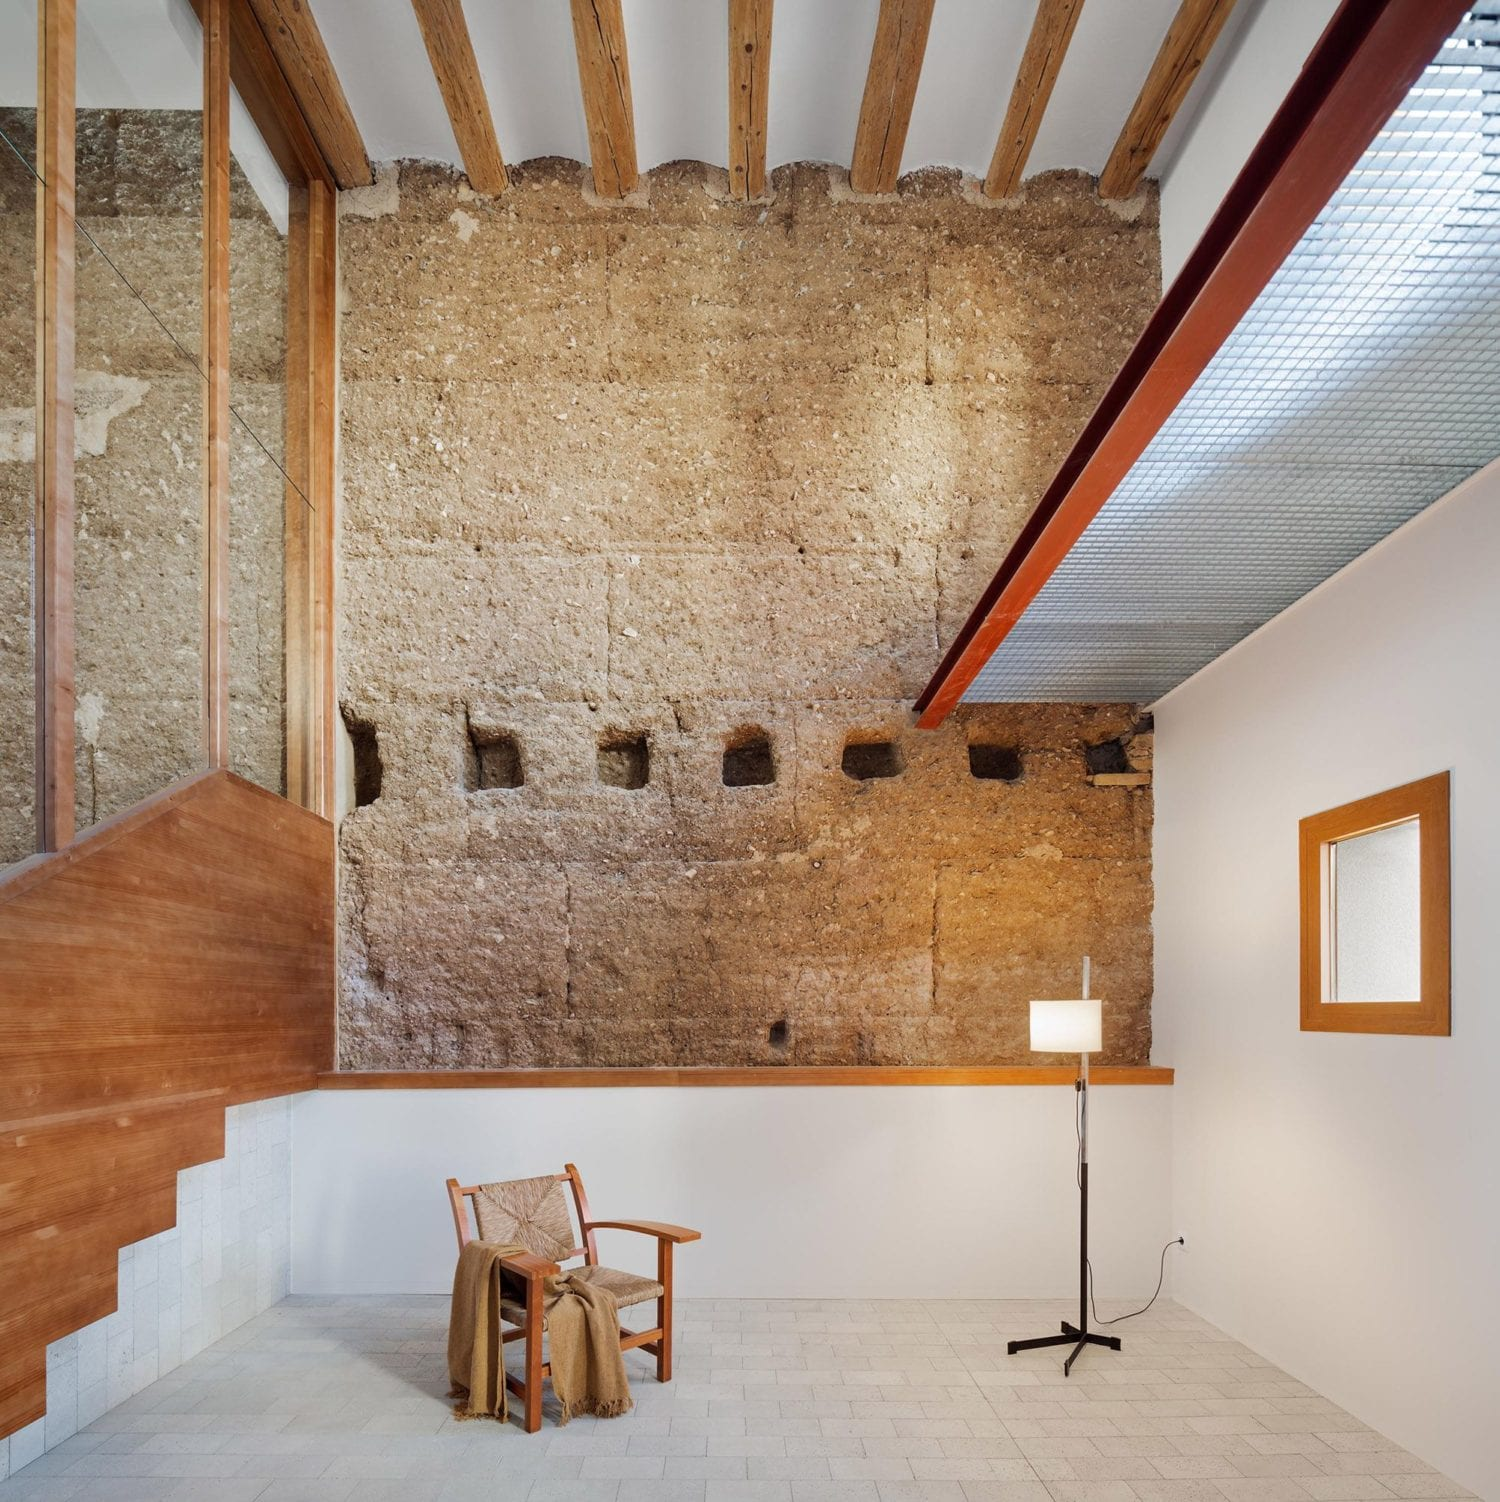 'Cal Jordi&Anna' House Renovation in Catalonia, Spain by Hiha Studio.